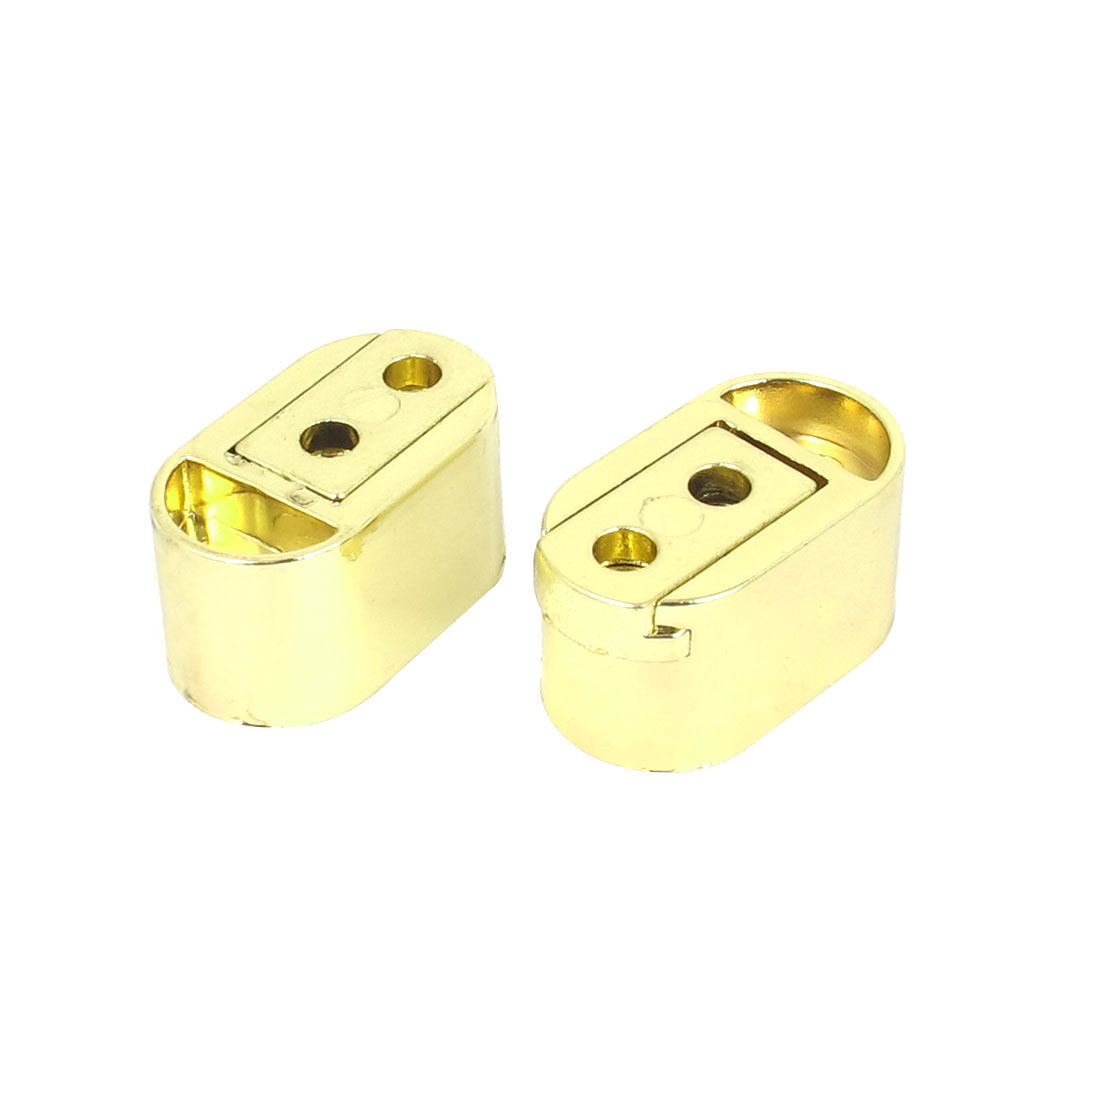 Wardrobe Cabinet Hanging Rail Rod End Socket Bracket Support Fitting Gold Tone 2pcs